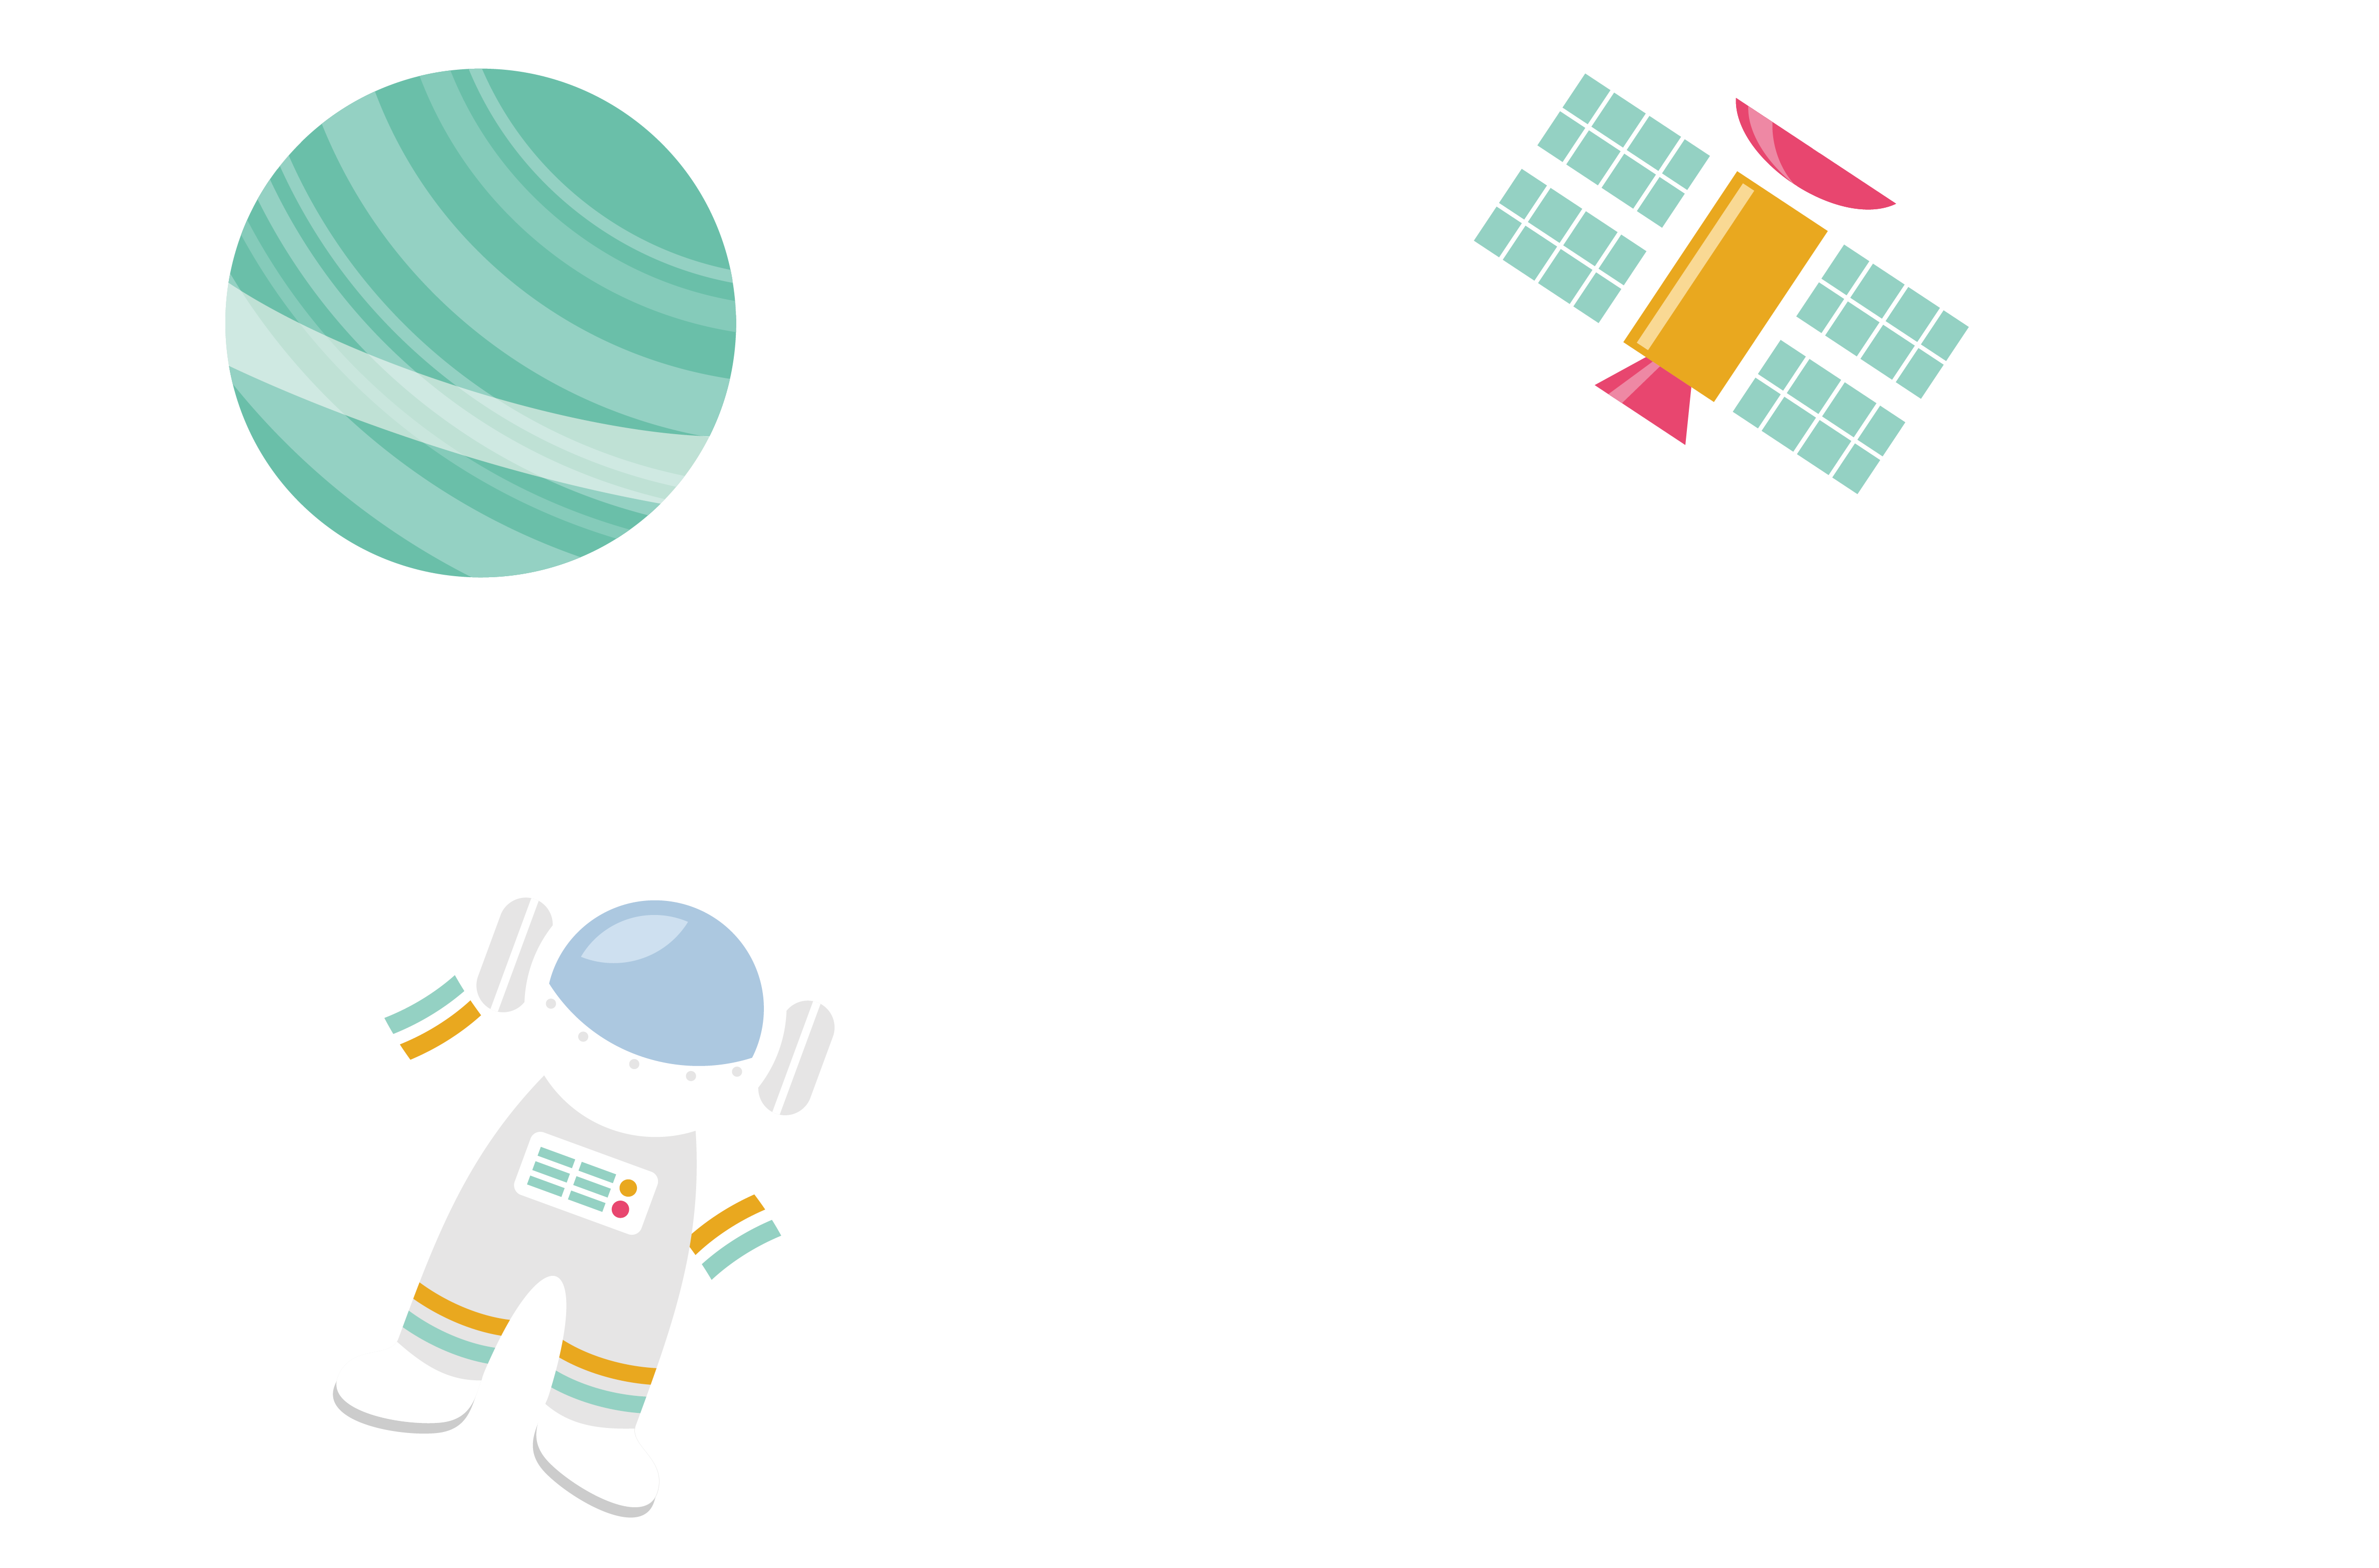 Space wallpaper png. Astronaut satellite icon astronauts